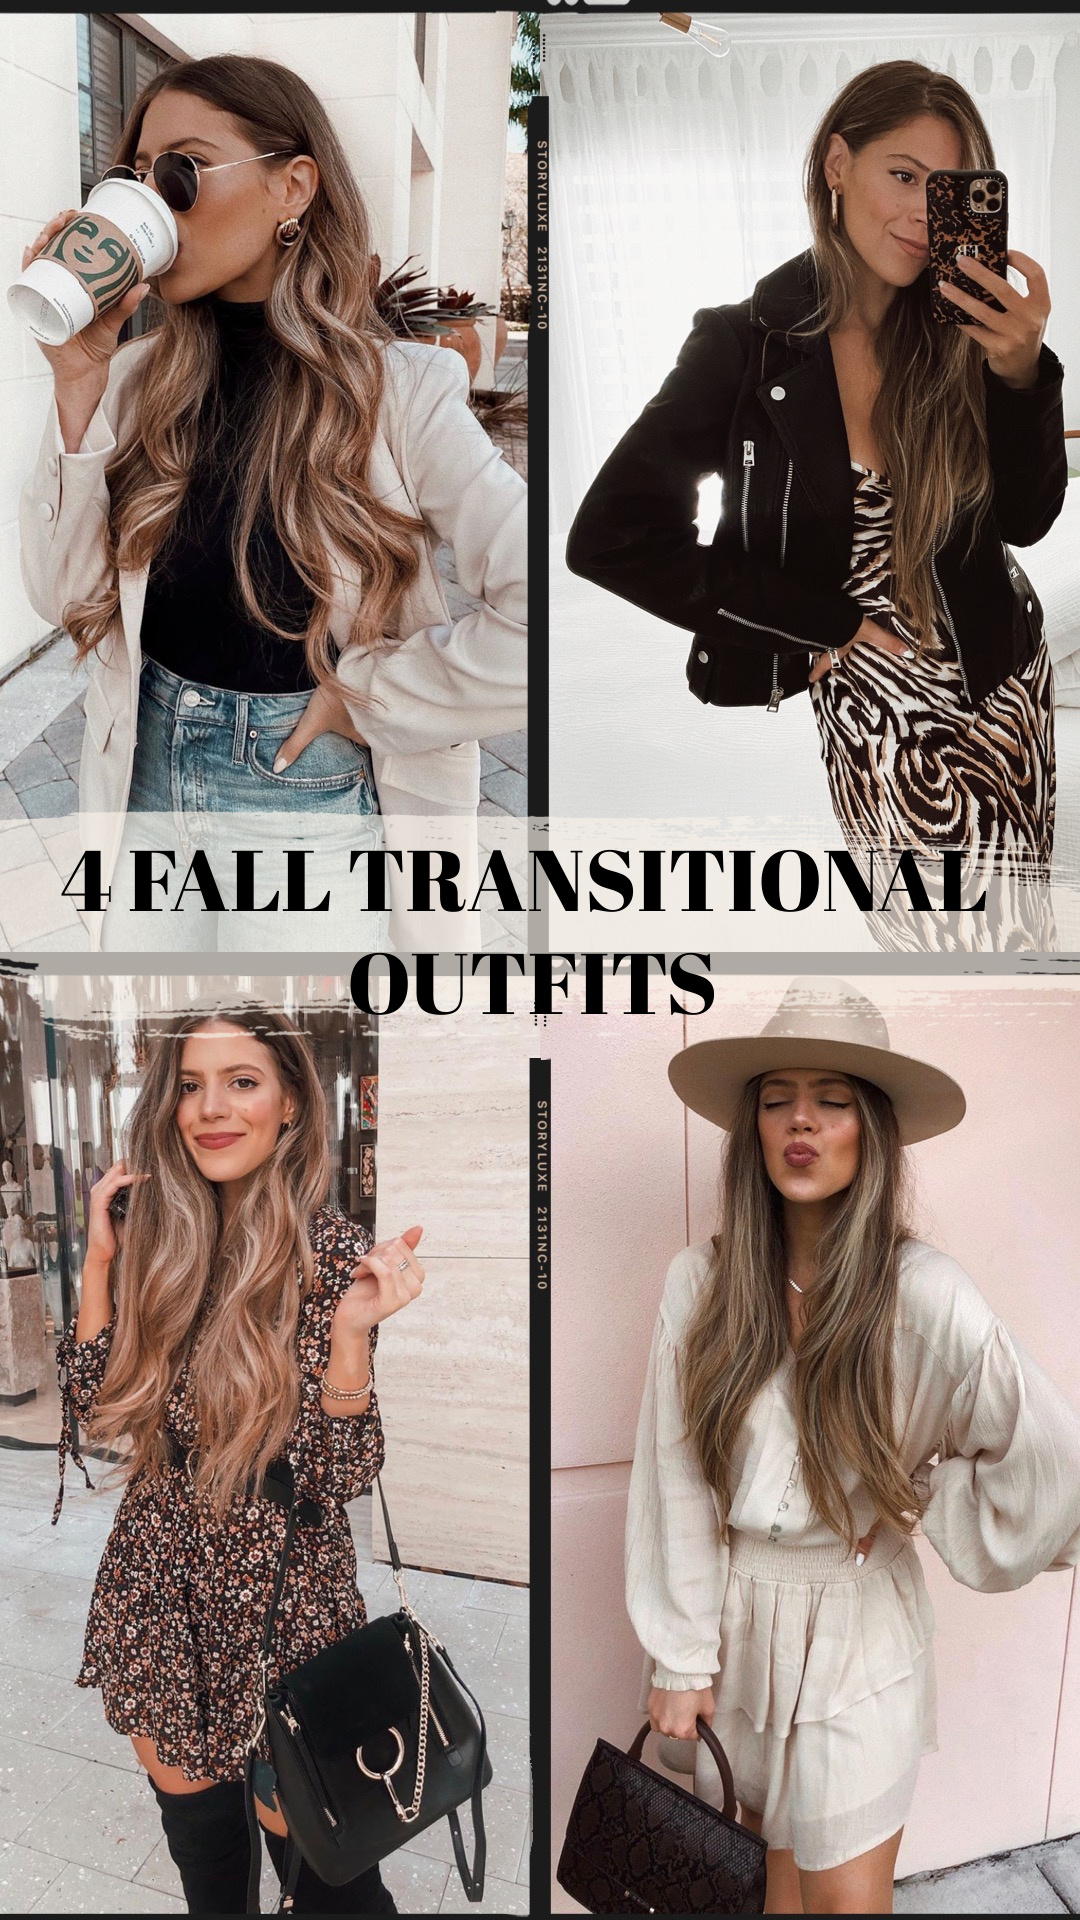 4 FALL TRANSITIONAL OUTFITS